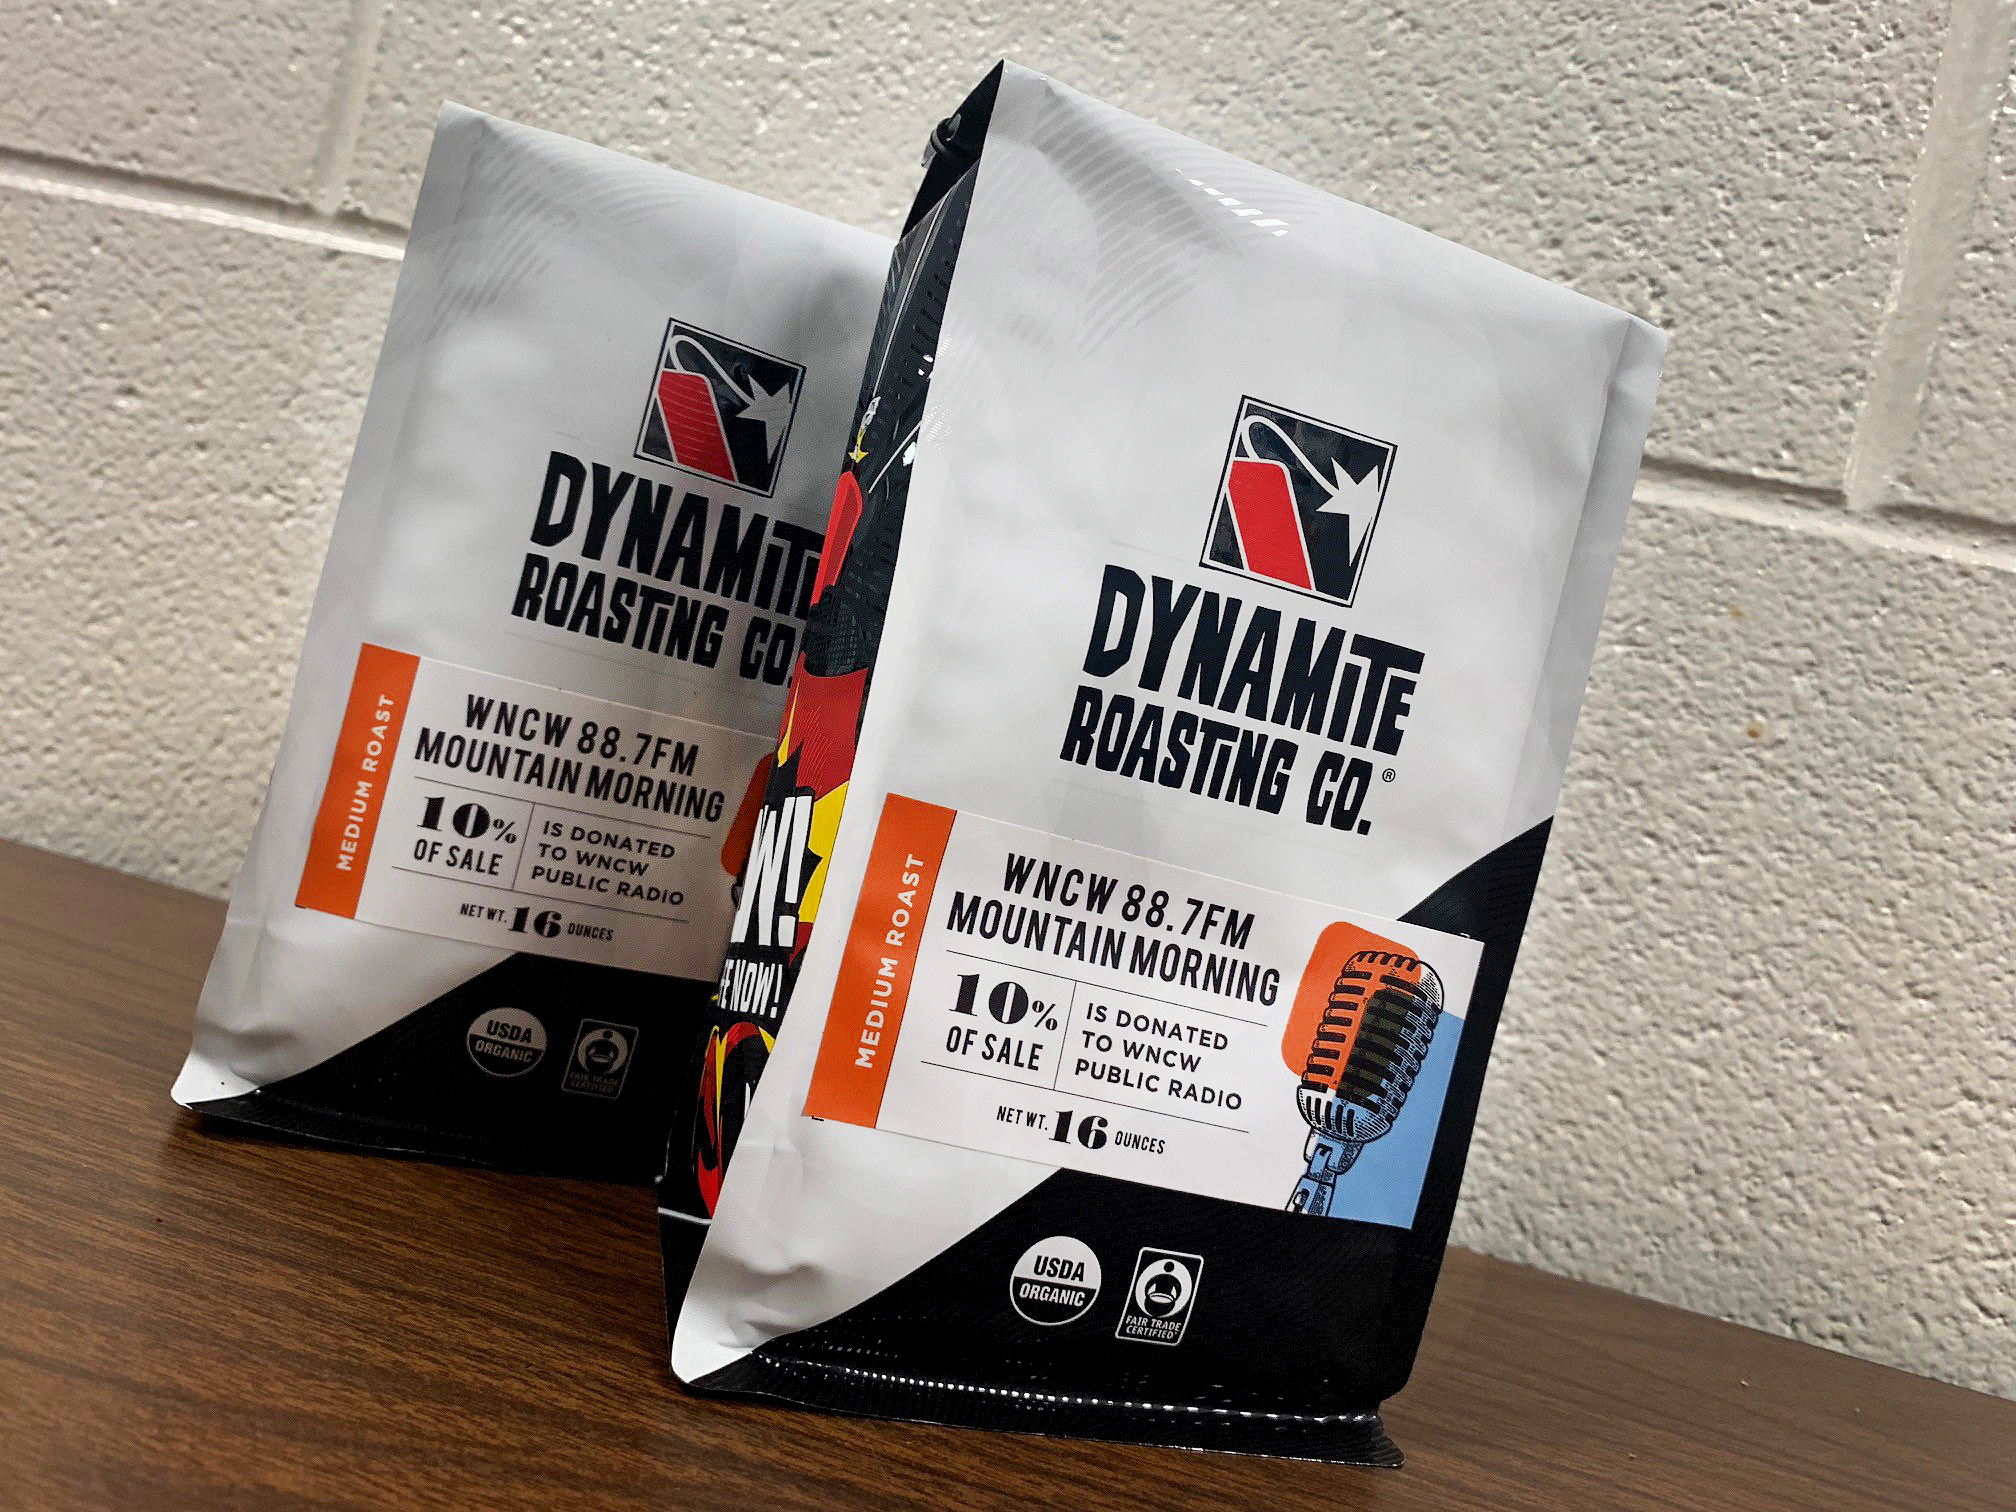 Dynamite Coffee photo by Vicki Dameron